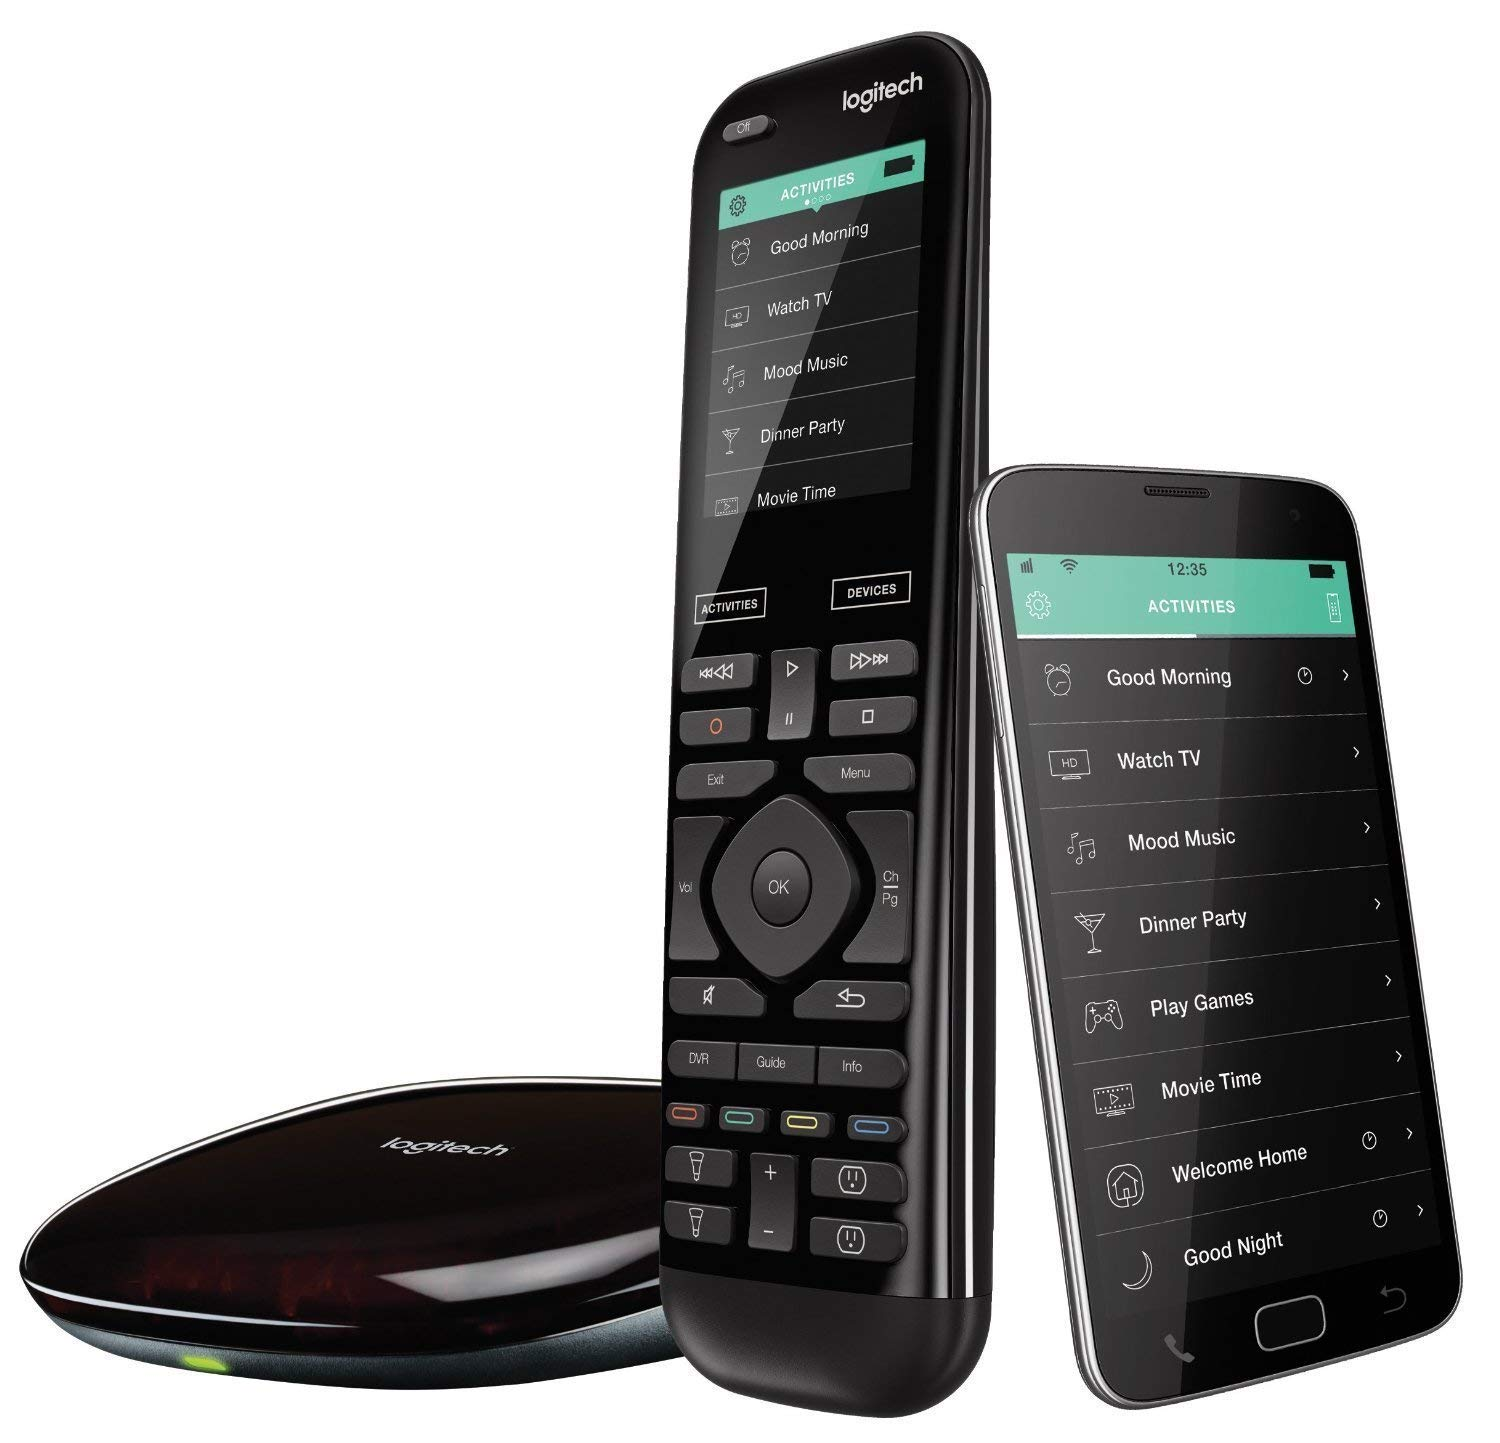 Logitech Harmony Elite Enhanced Universal Remote Control for SKY, Apple TV, fireTV, Alexa, Roku, Netflix, Sonos and Smart Home, Easy Set-Up, App and Hub, LG/Samsung/Sony/Hisense/Xbox/PS4 - Black